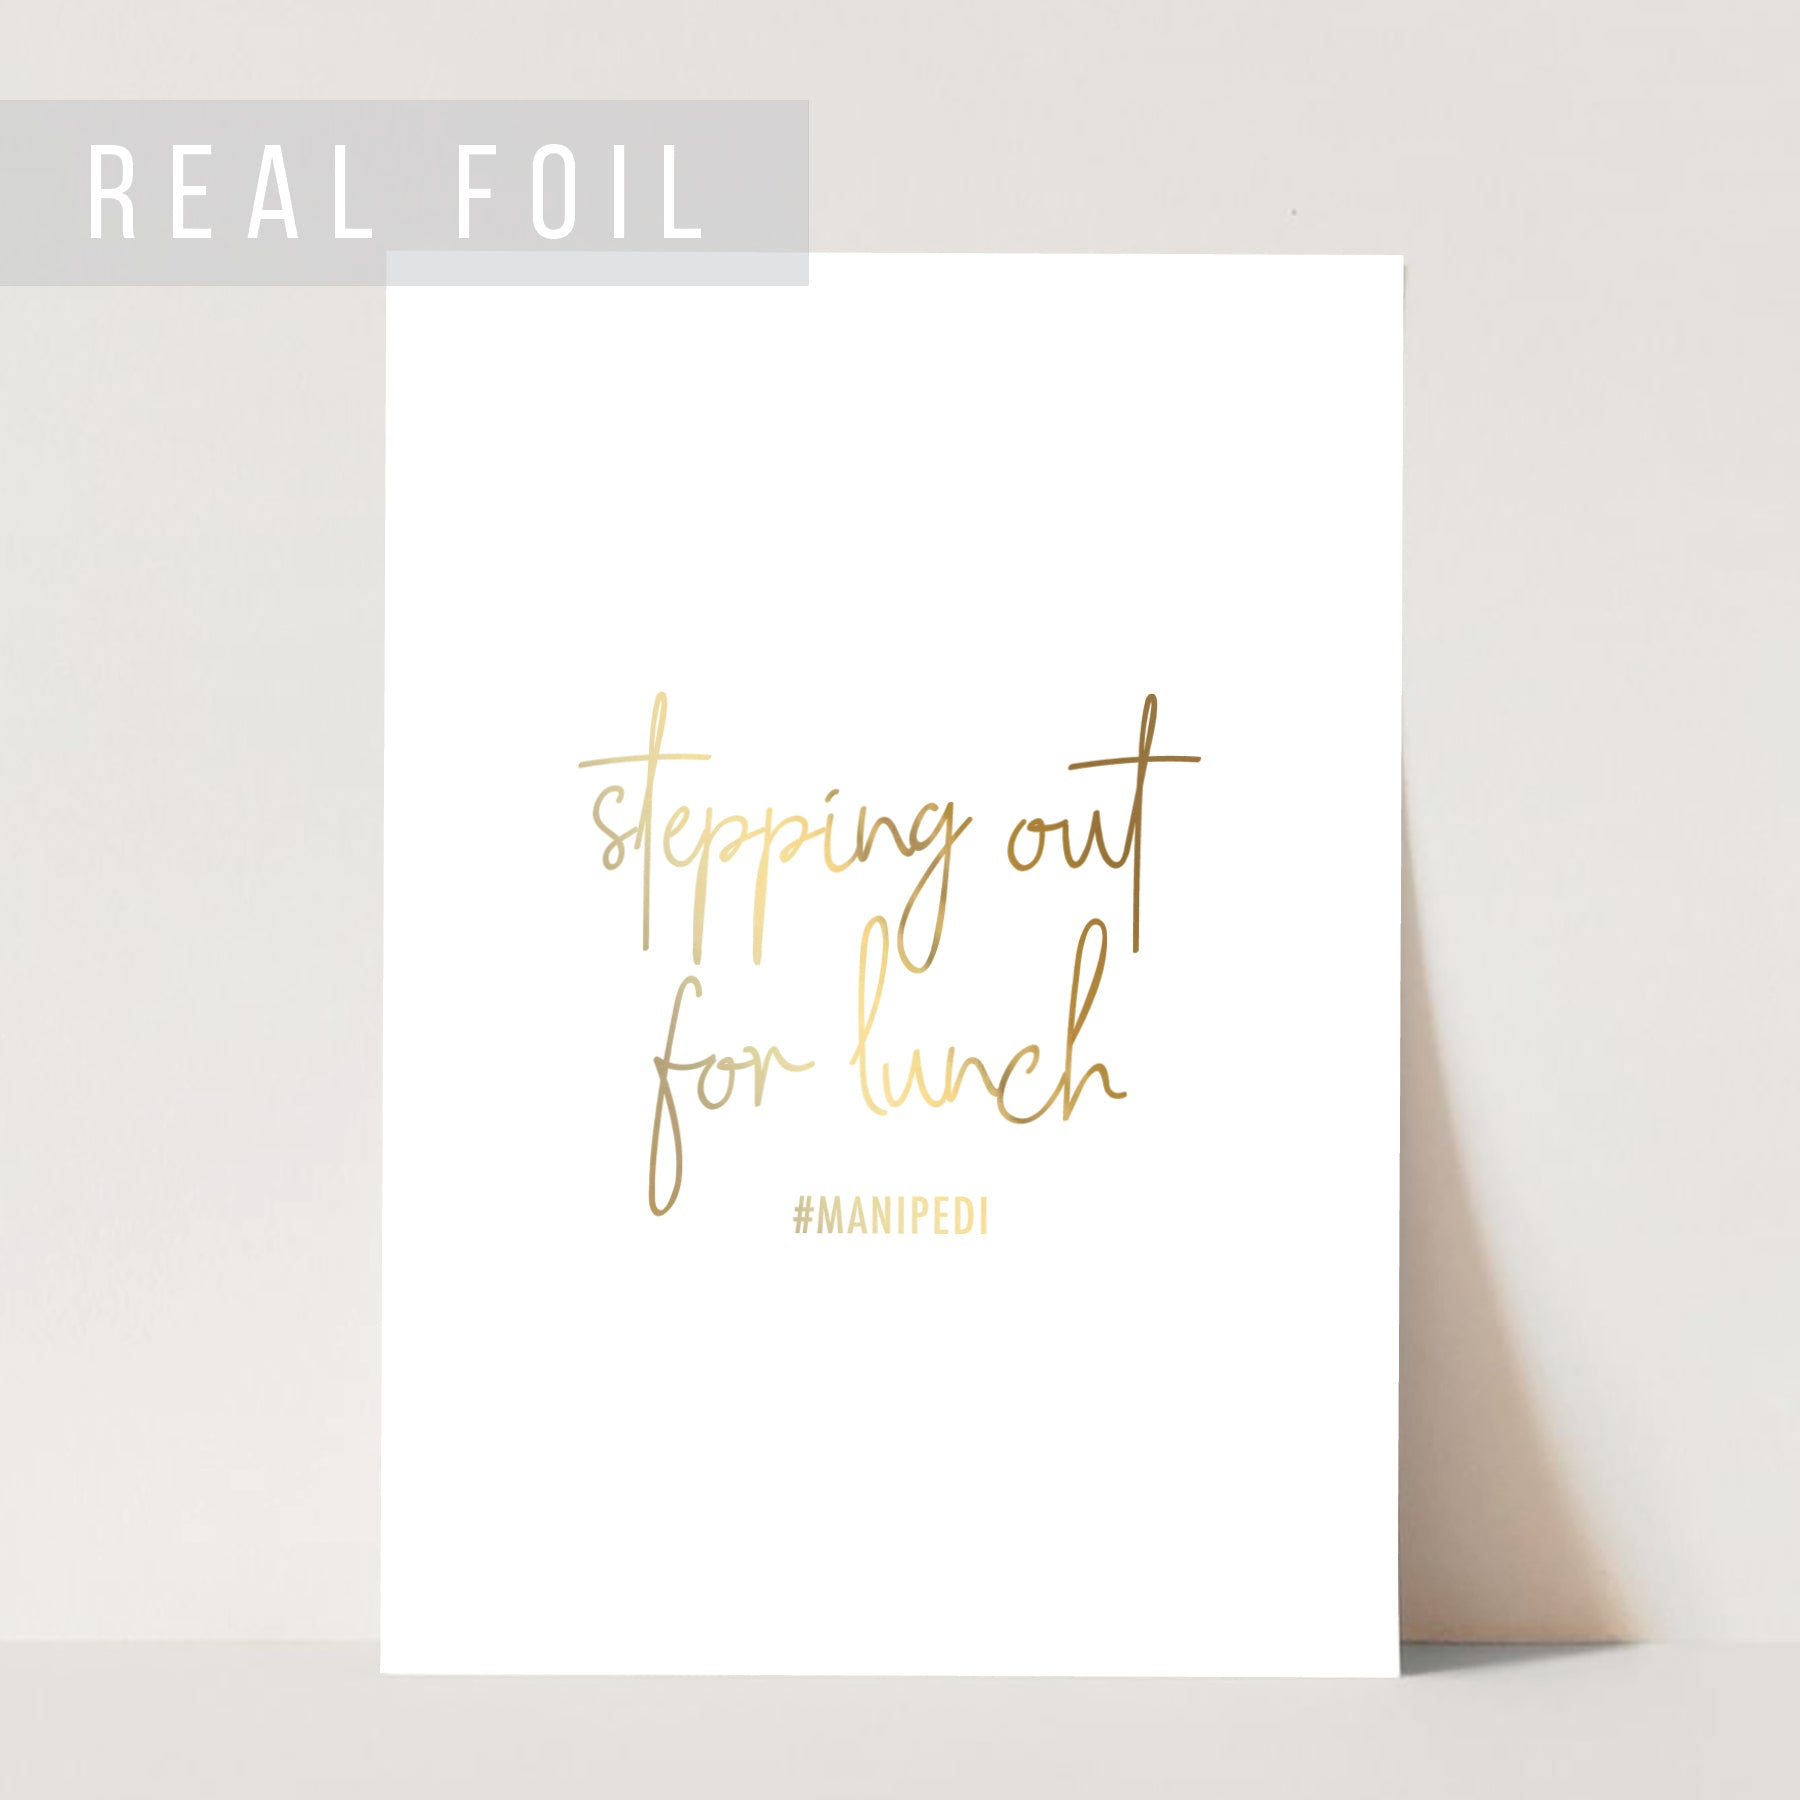 Stepping Out for Lunch #manipedi Foiled Art Print